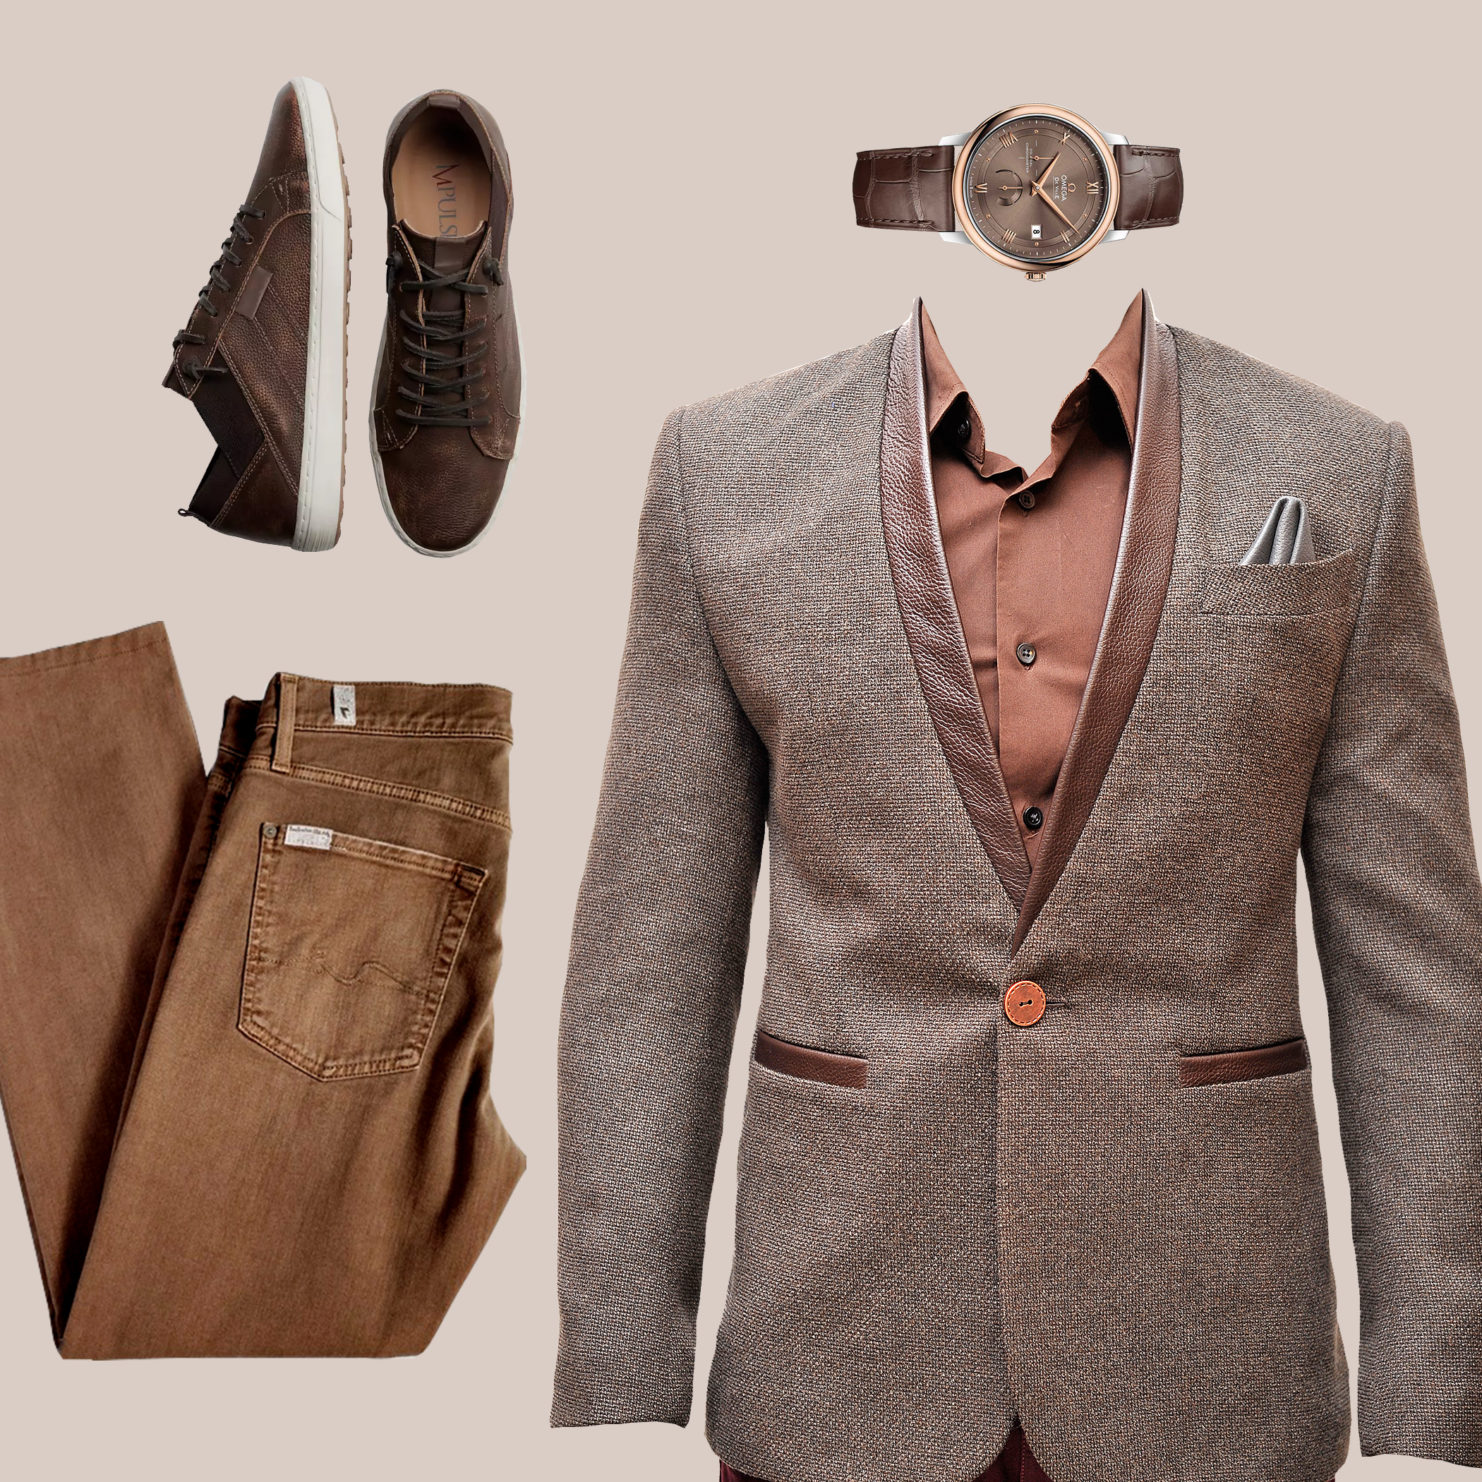 sports jacket smart casual birthday outfit